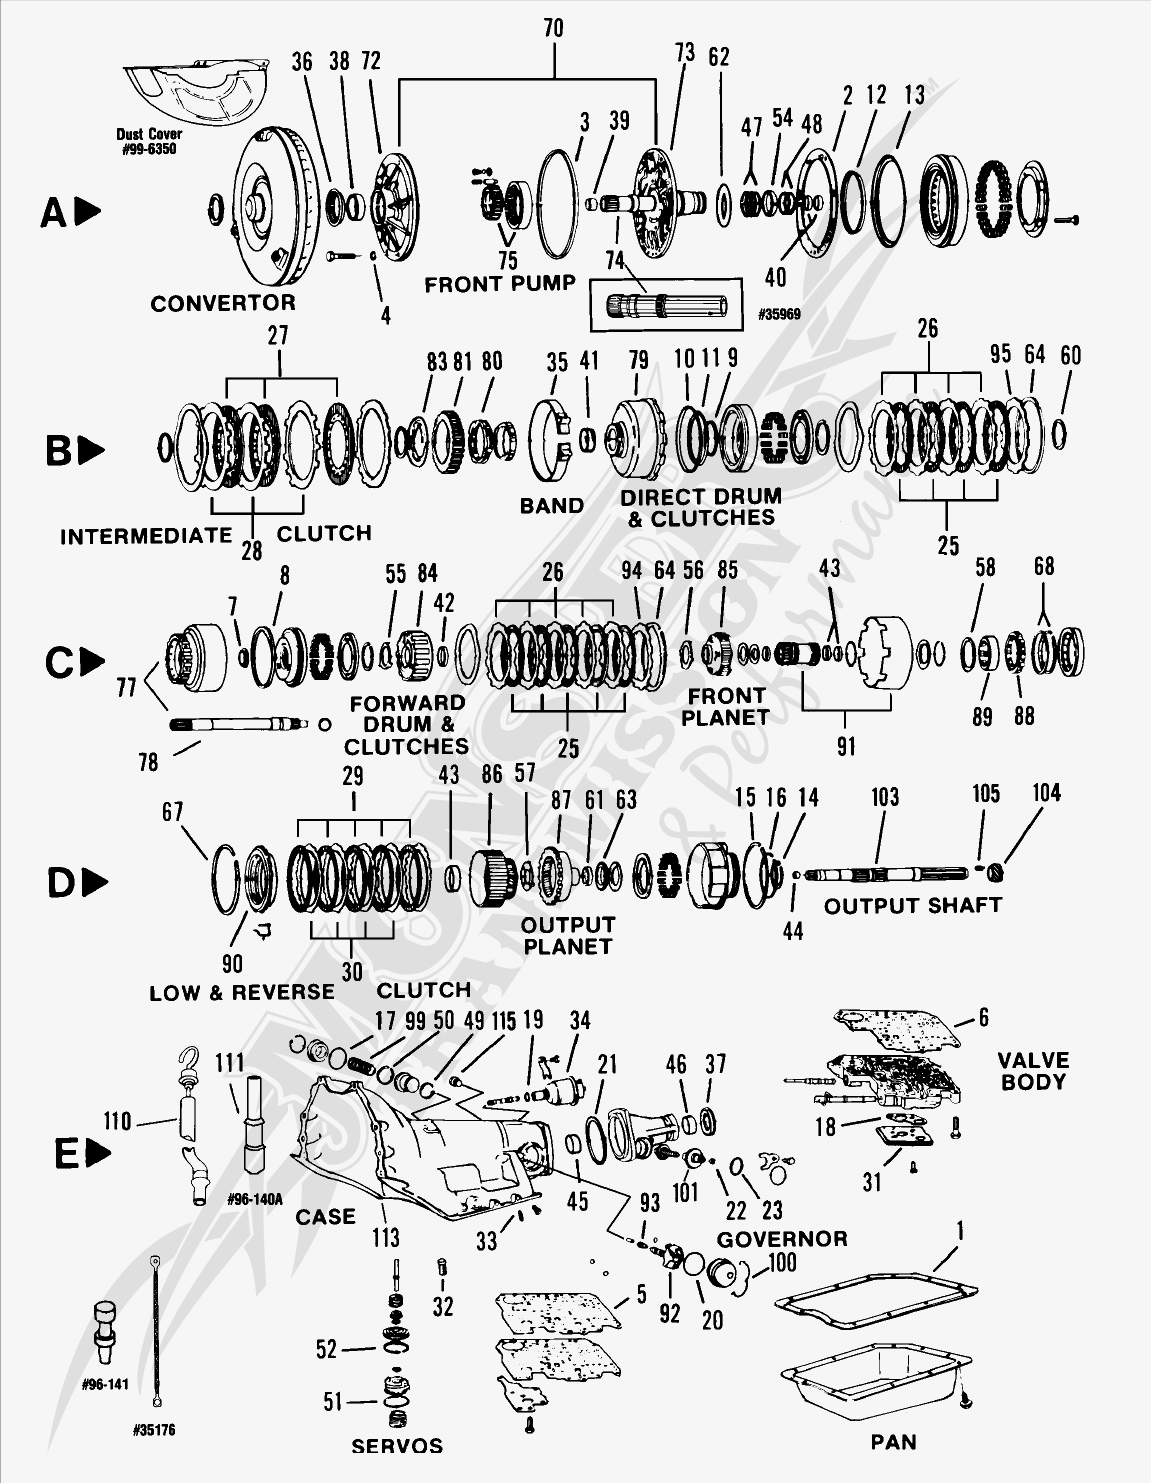 Chevy Transmission Diagrams Wiring Diagram Data Gm Turbo 350c Th350c Automatic Parts And Truck Manual